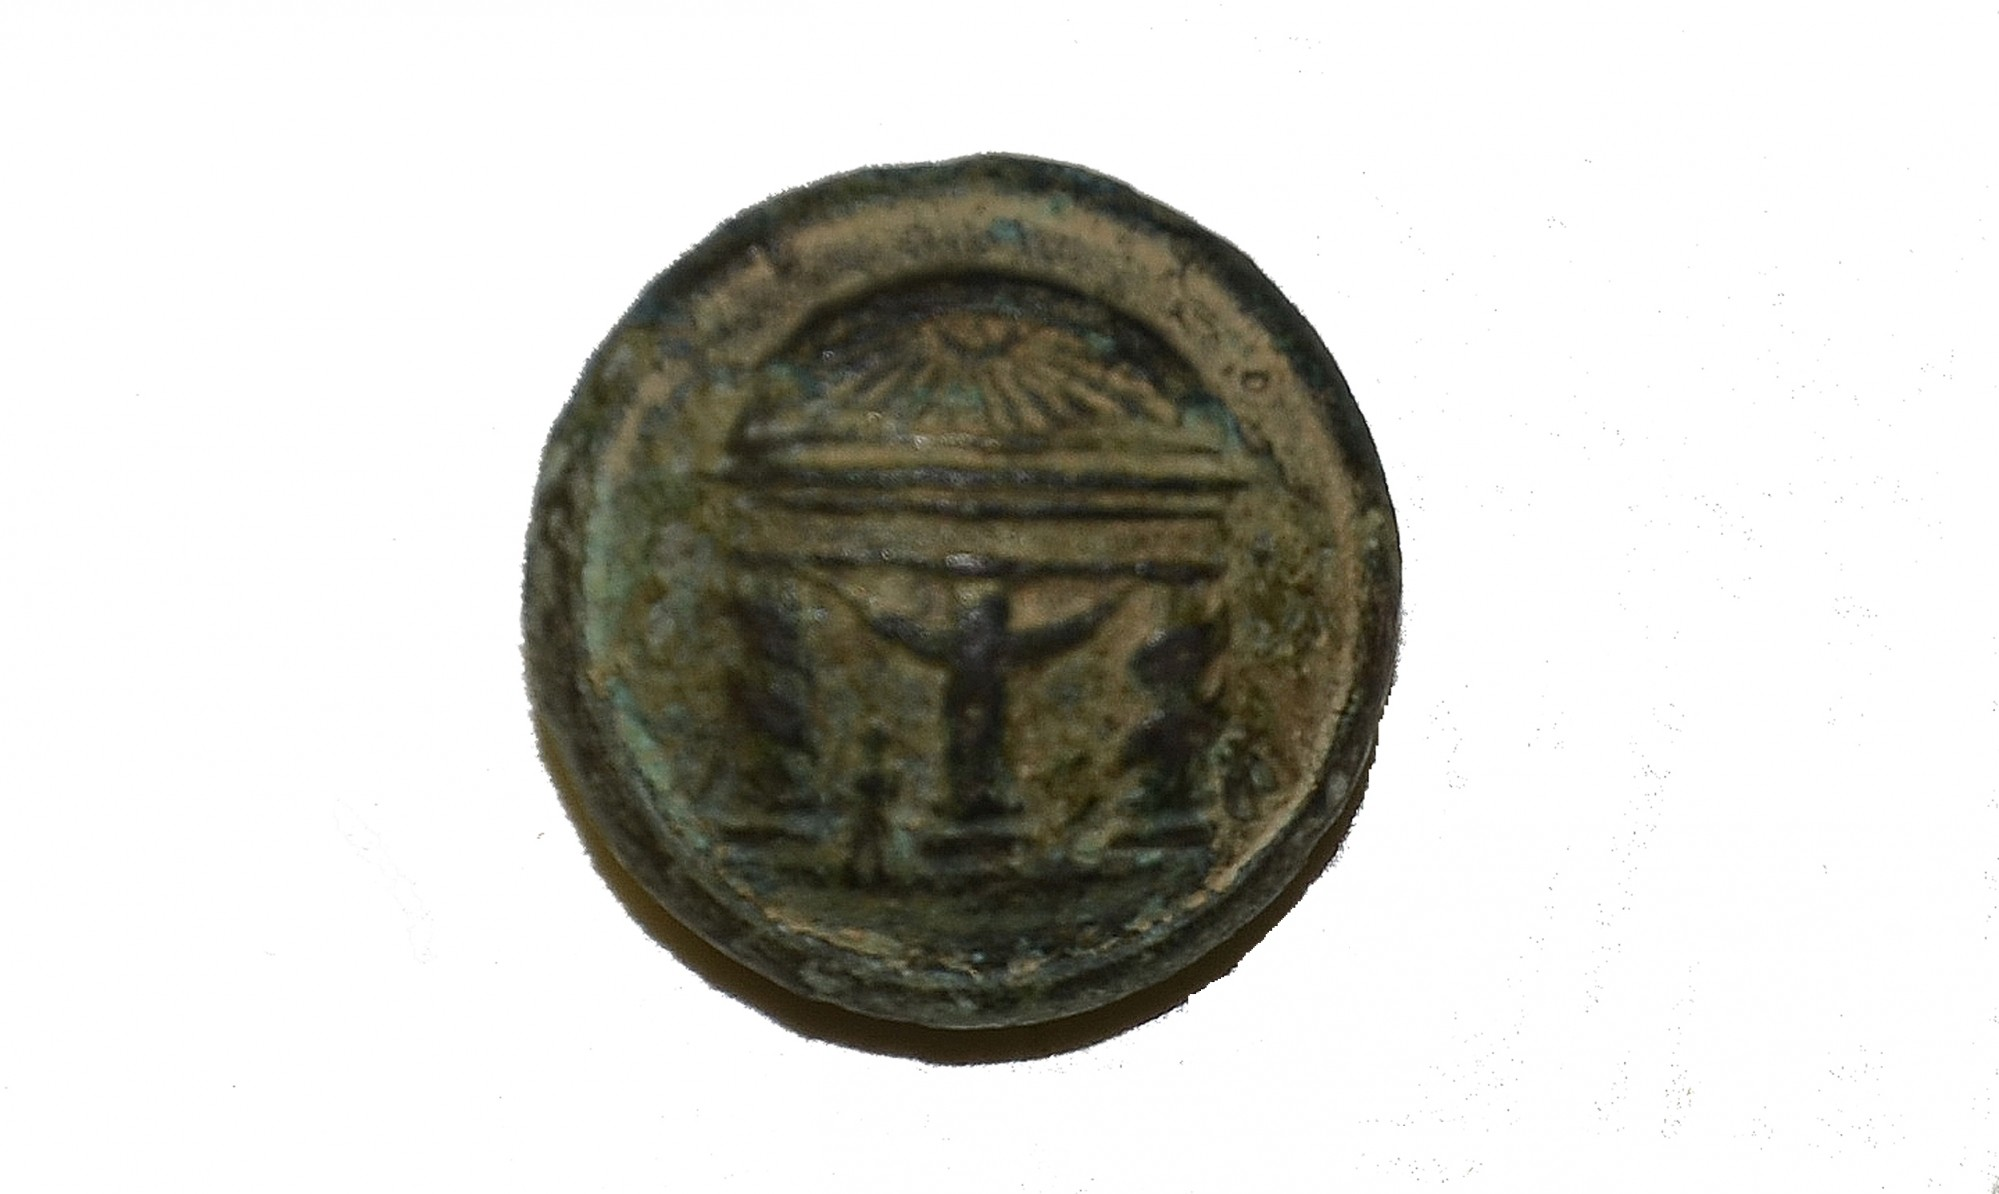 GEORGIA STATE CUFF BUTTON, RECOVERED FROM ROSE FARM FIELD, GETTYSBURG